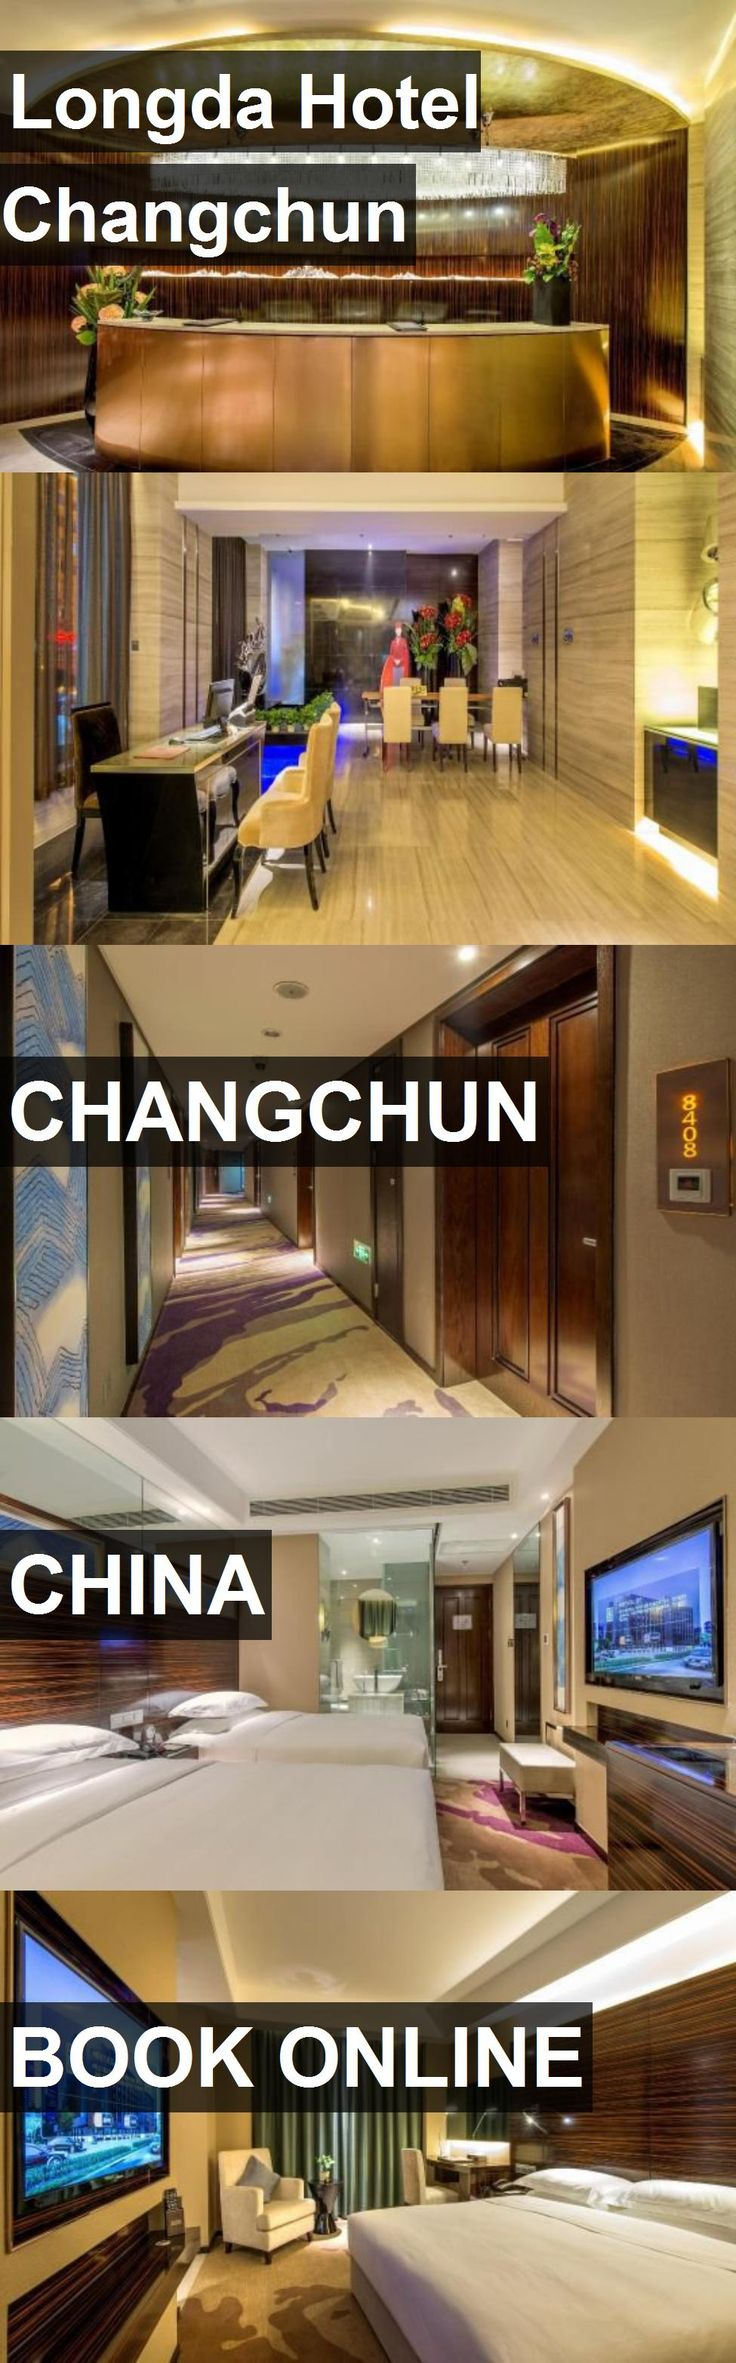 Longda Hotel Changchun in Changchun, China. For more information, photos, reviews and best prices please follow the link. #China #Changchun #travel #vacation #hotel